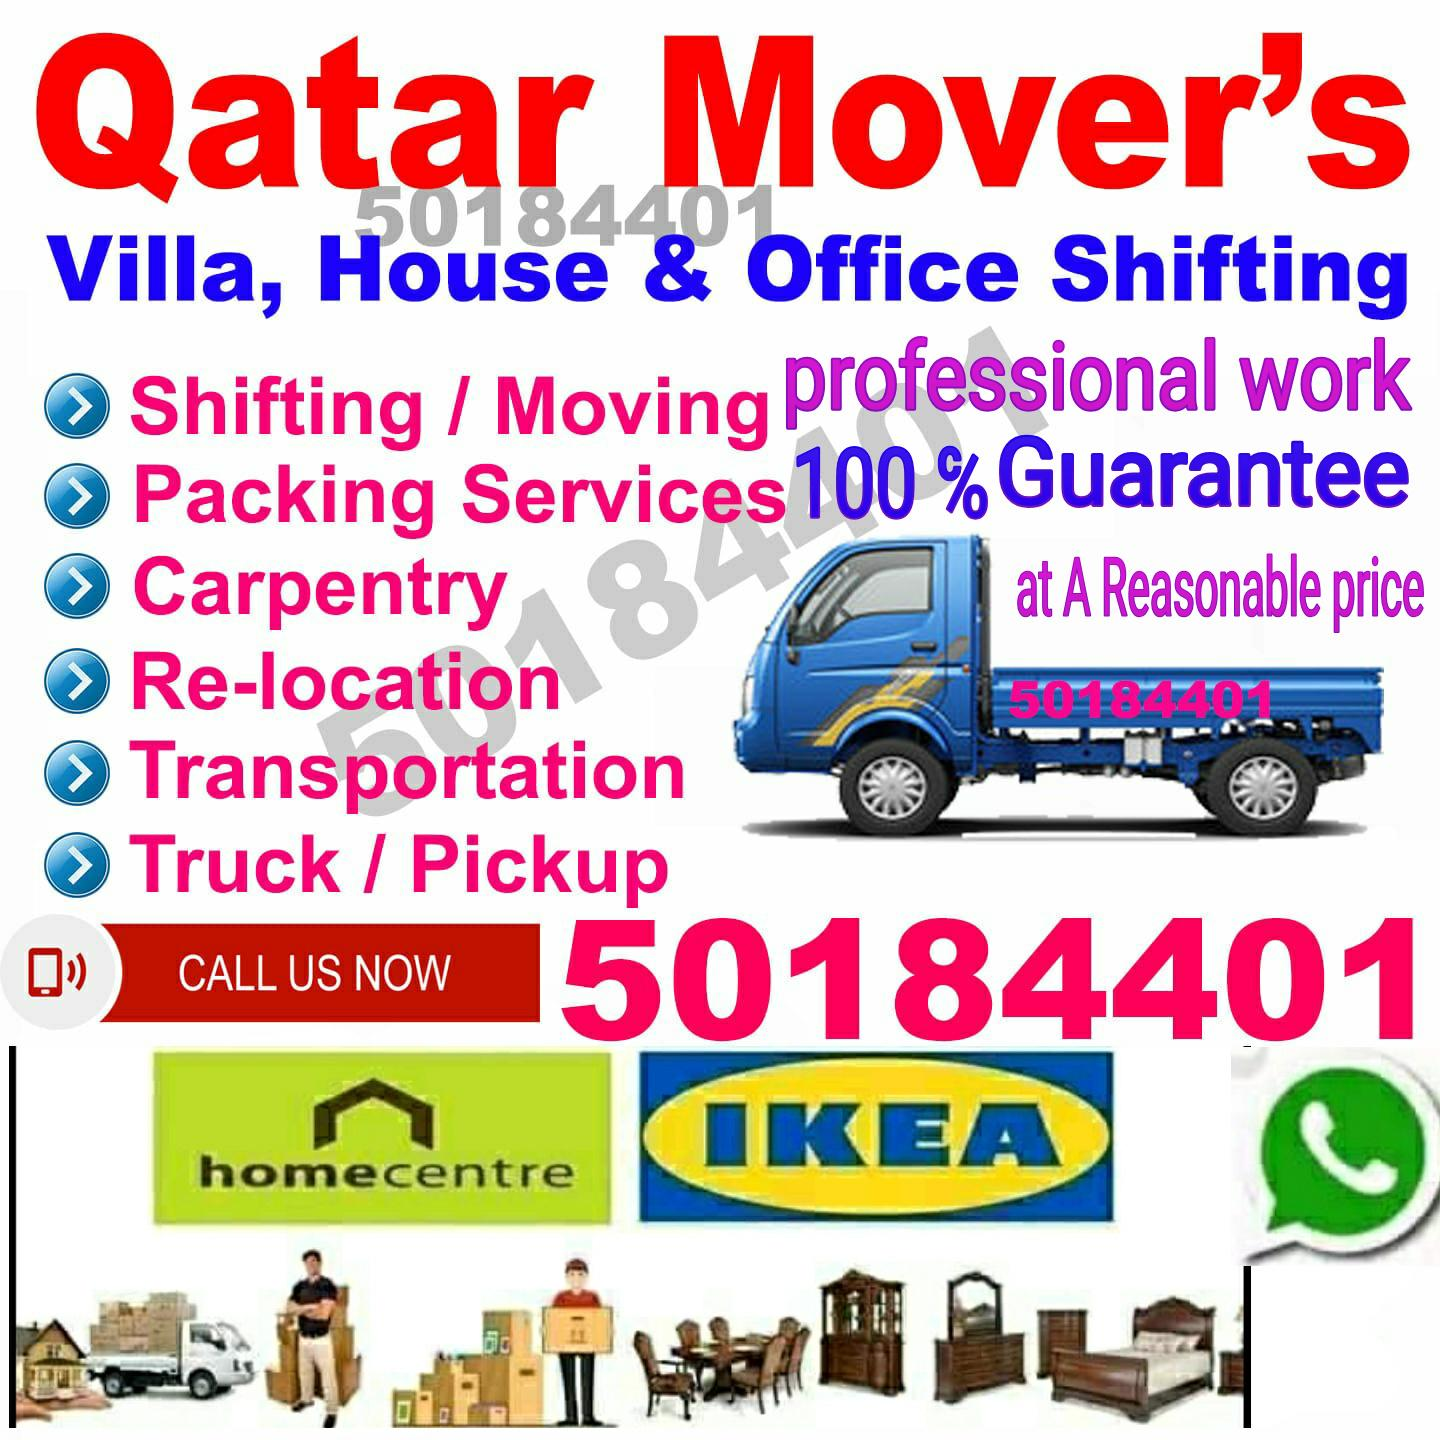 We do Less Price Professional Moving Services Shif